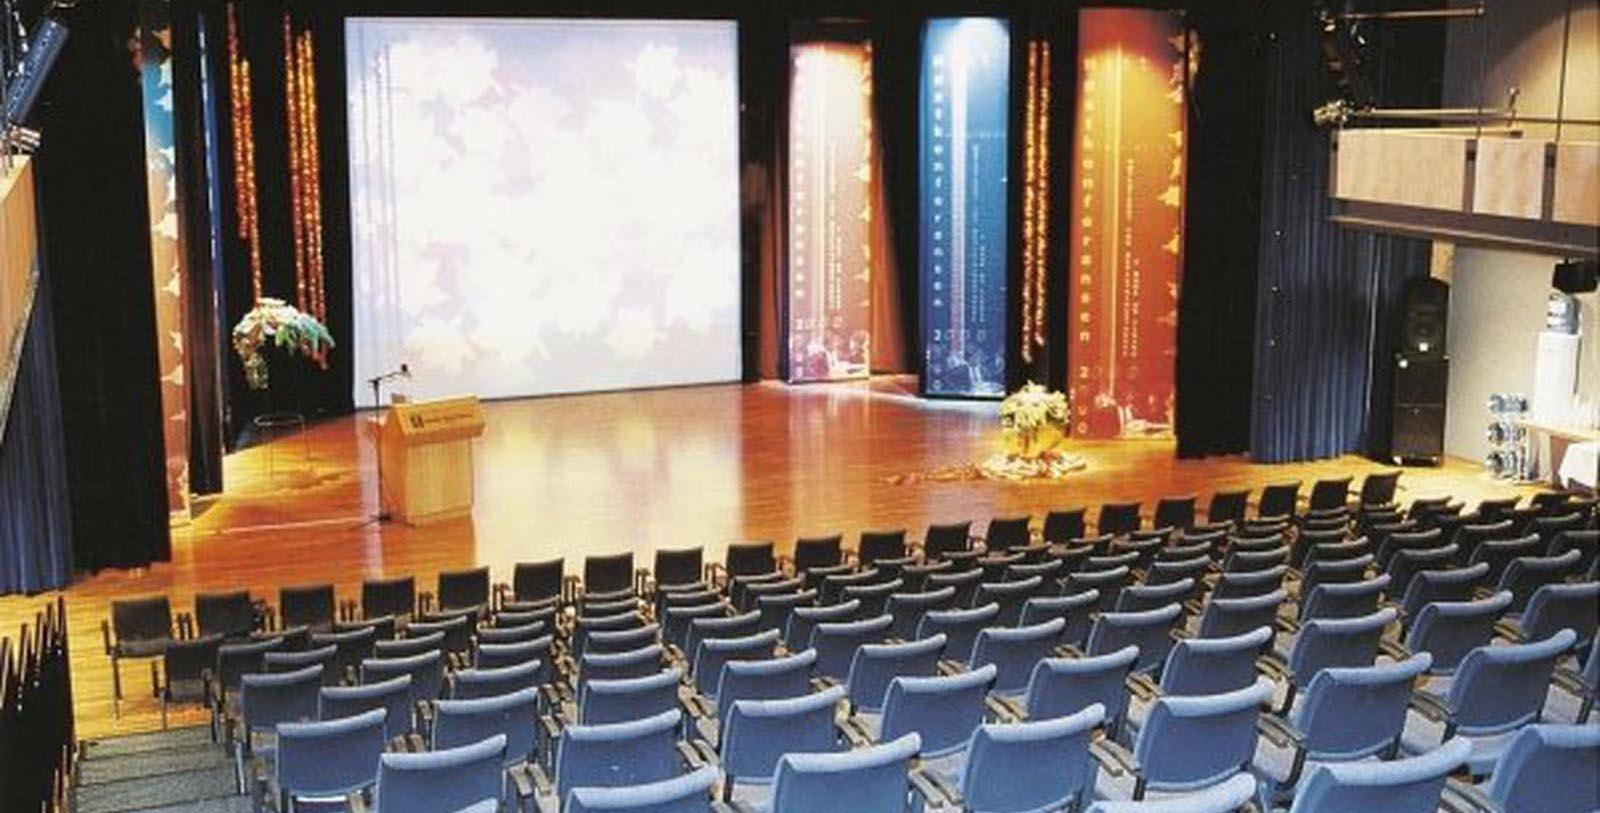 Image of Auditorium at Roros Hotel, 1951, Member of Historic Hotels Worldwide, in Roros, Norway, Experience